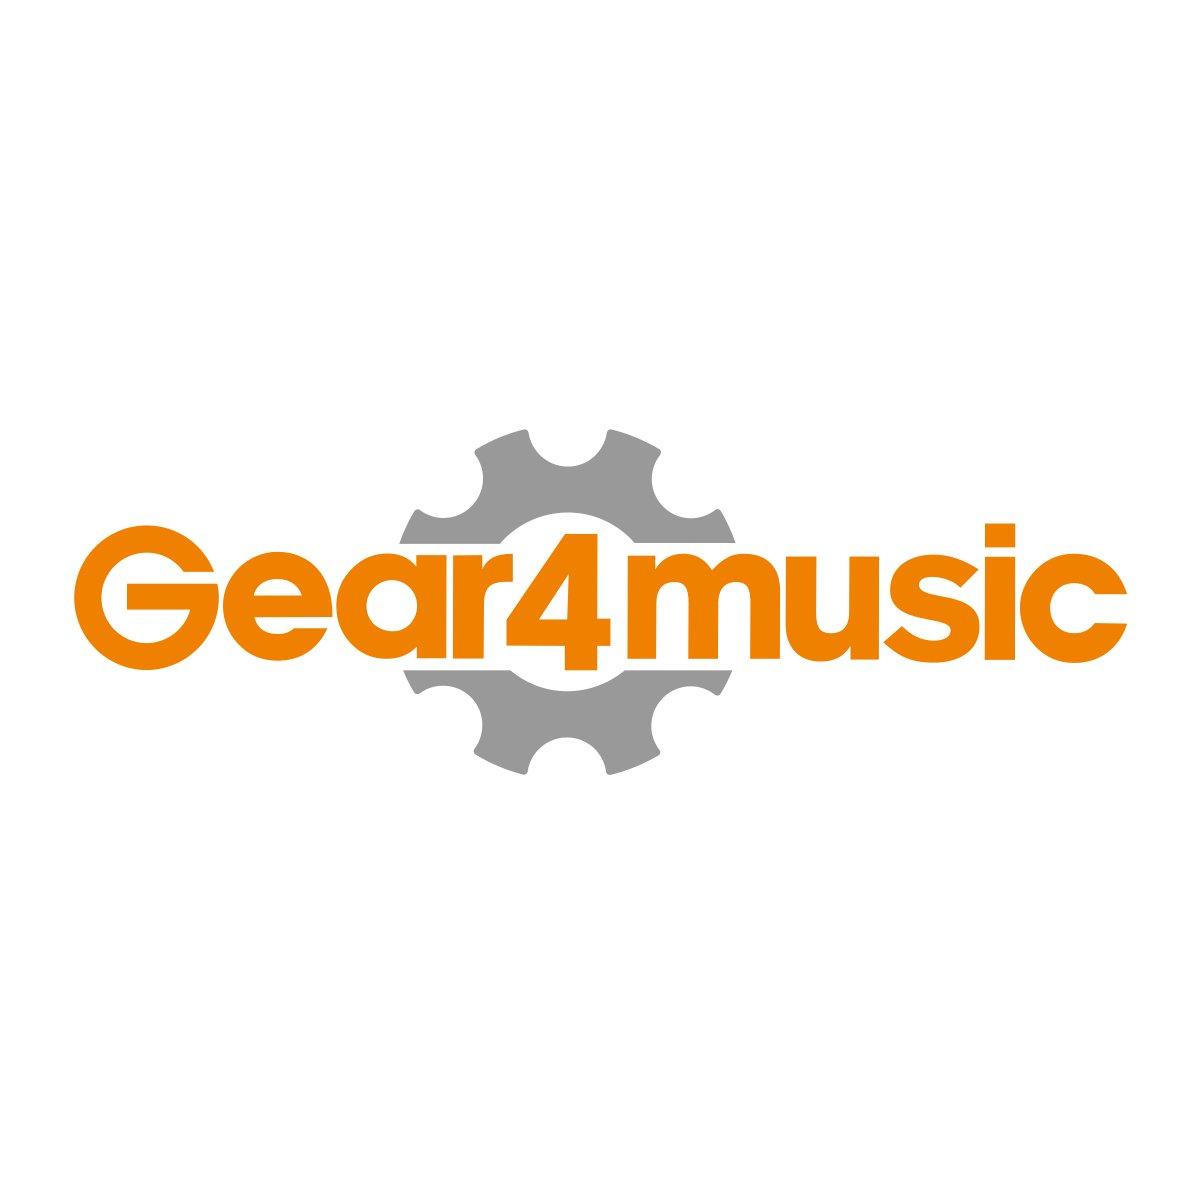 Studio Arm stojalo za mikrofon od Gear4music